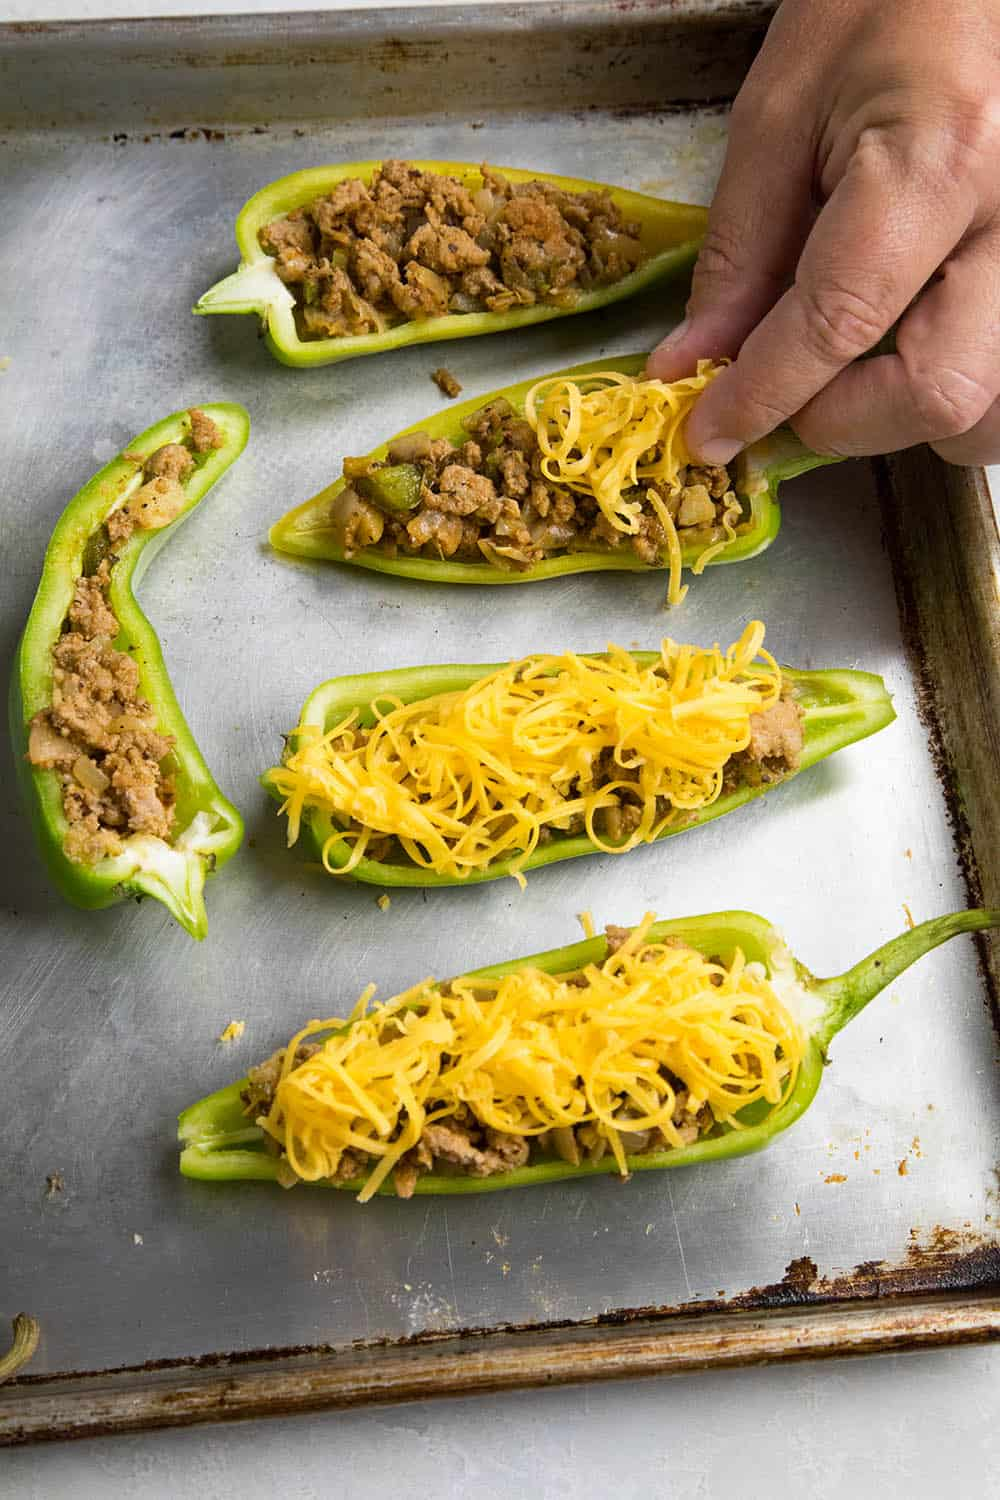 Topping the stuffed Anaheim peppers with cheese